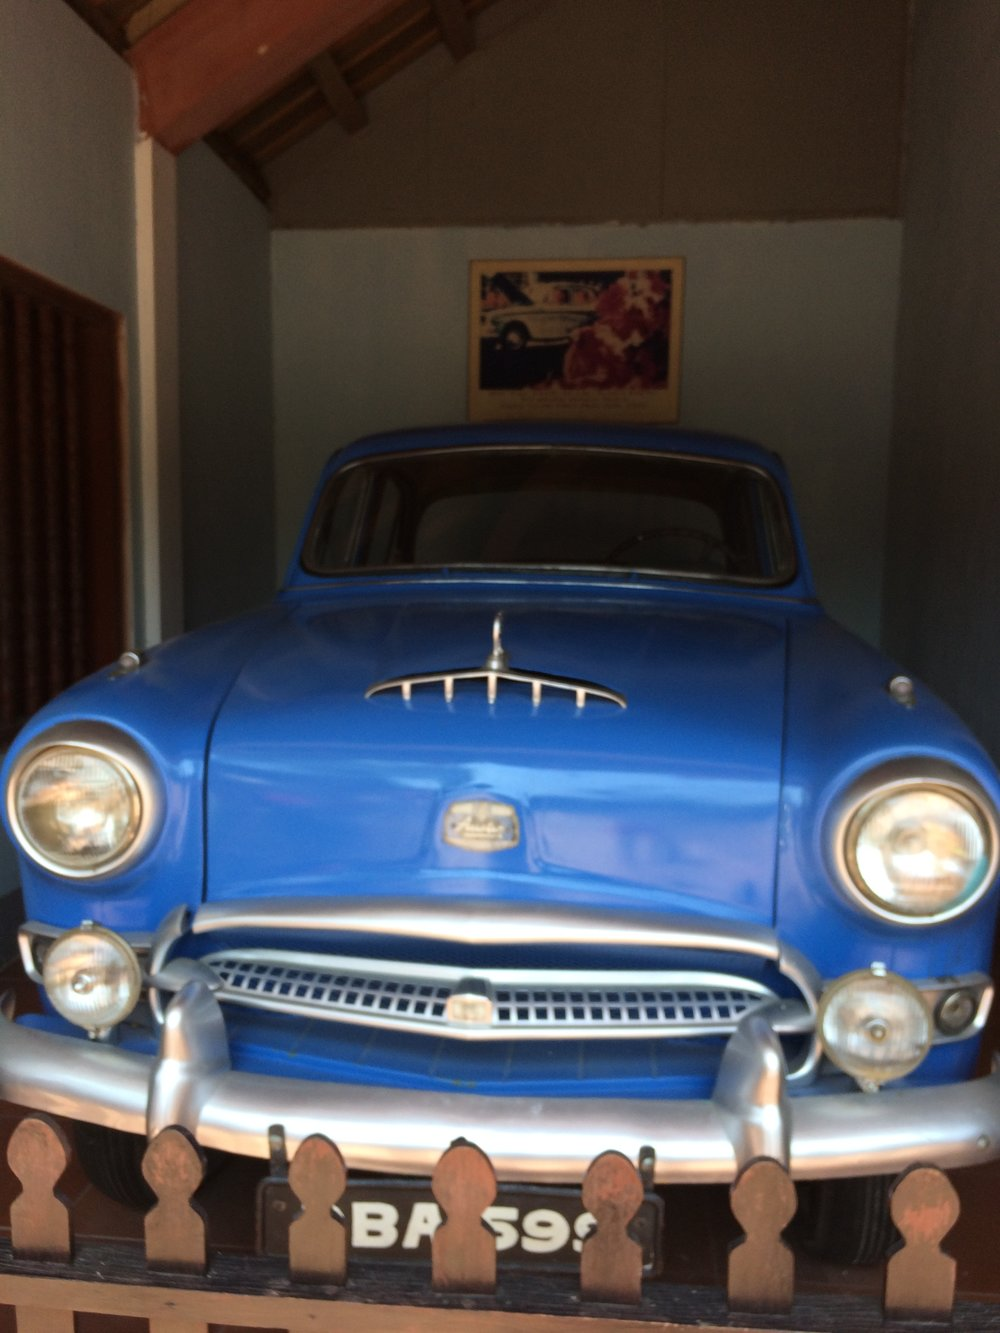 A model of the car